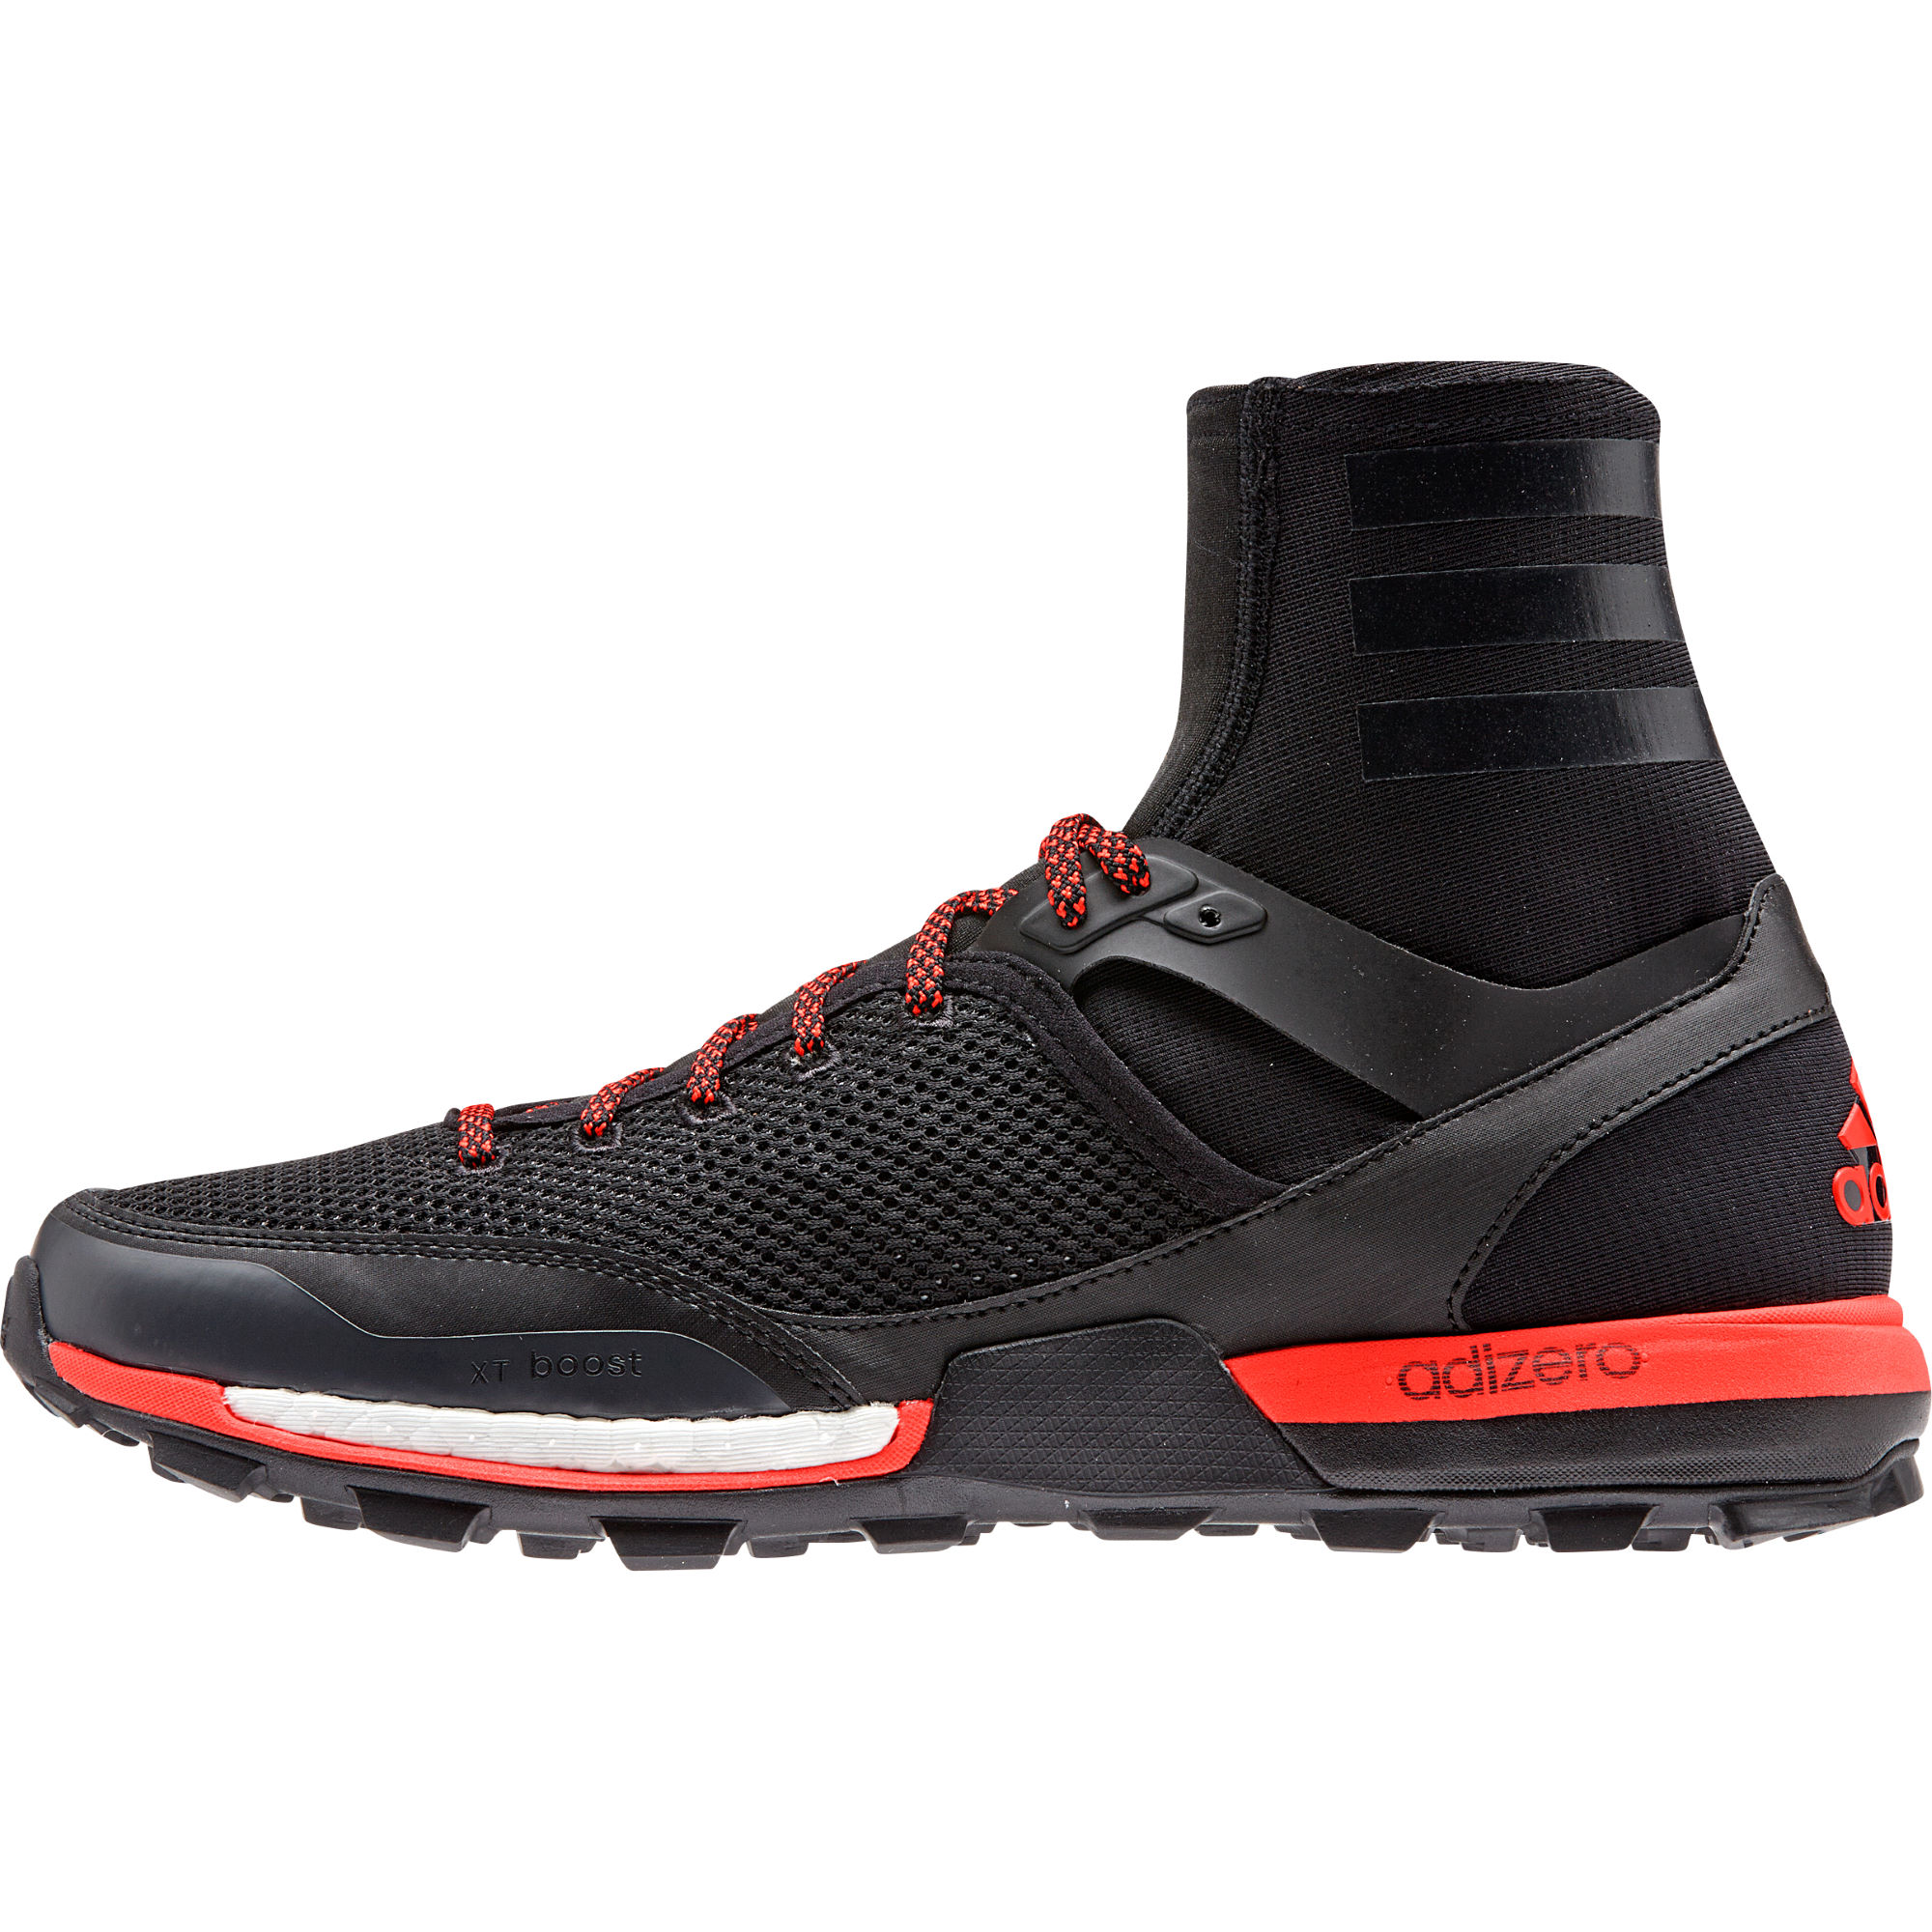 Adidas-Adizero-XT-Boost-Shoes-AW15-Offroad-Running-Shoes-Black-Grey-Red-AW15-B23452